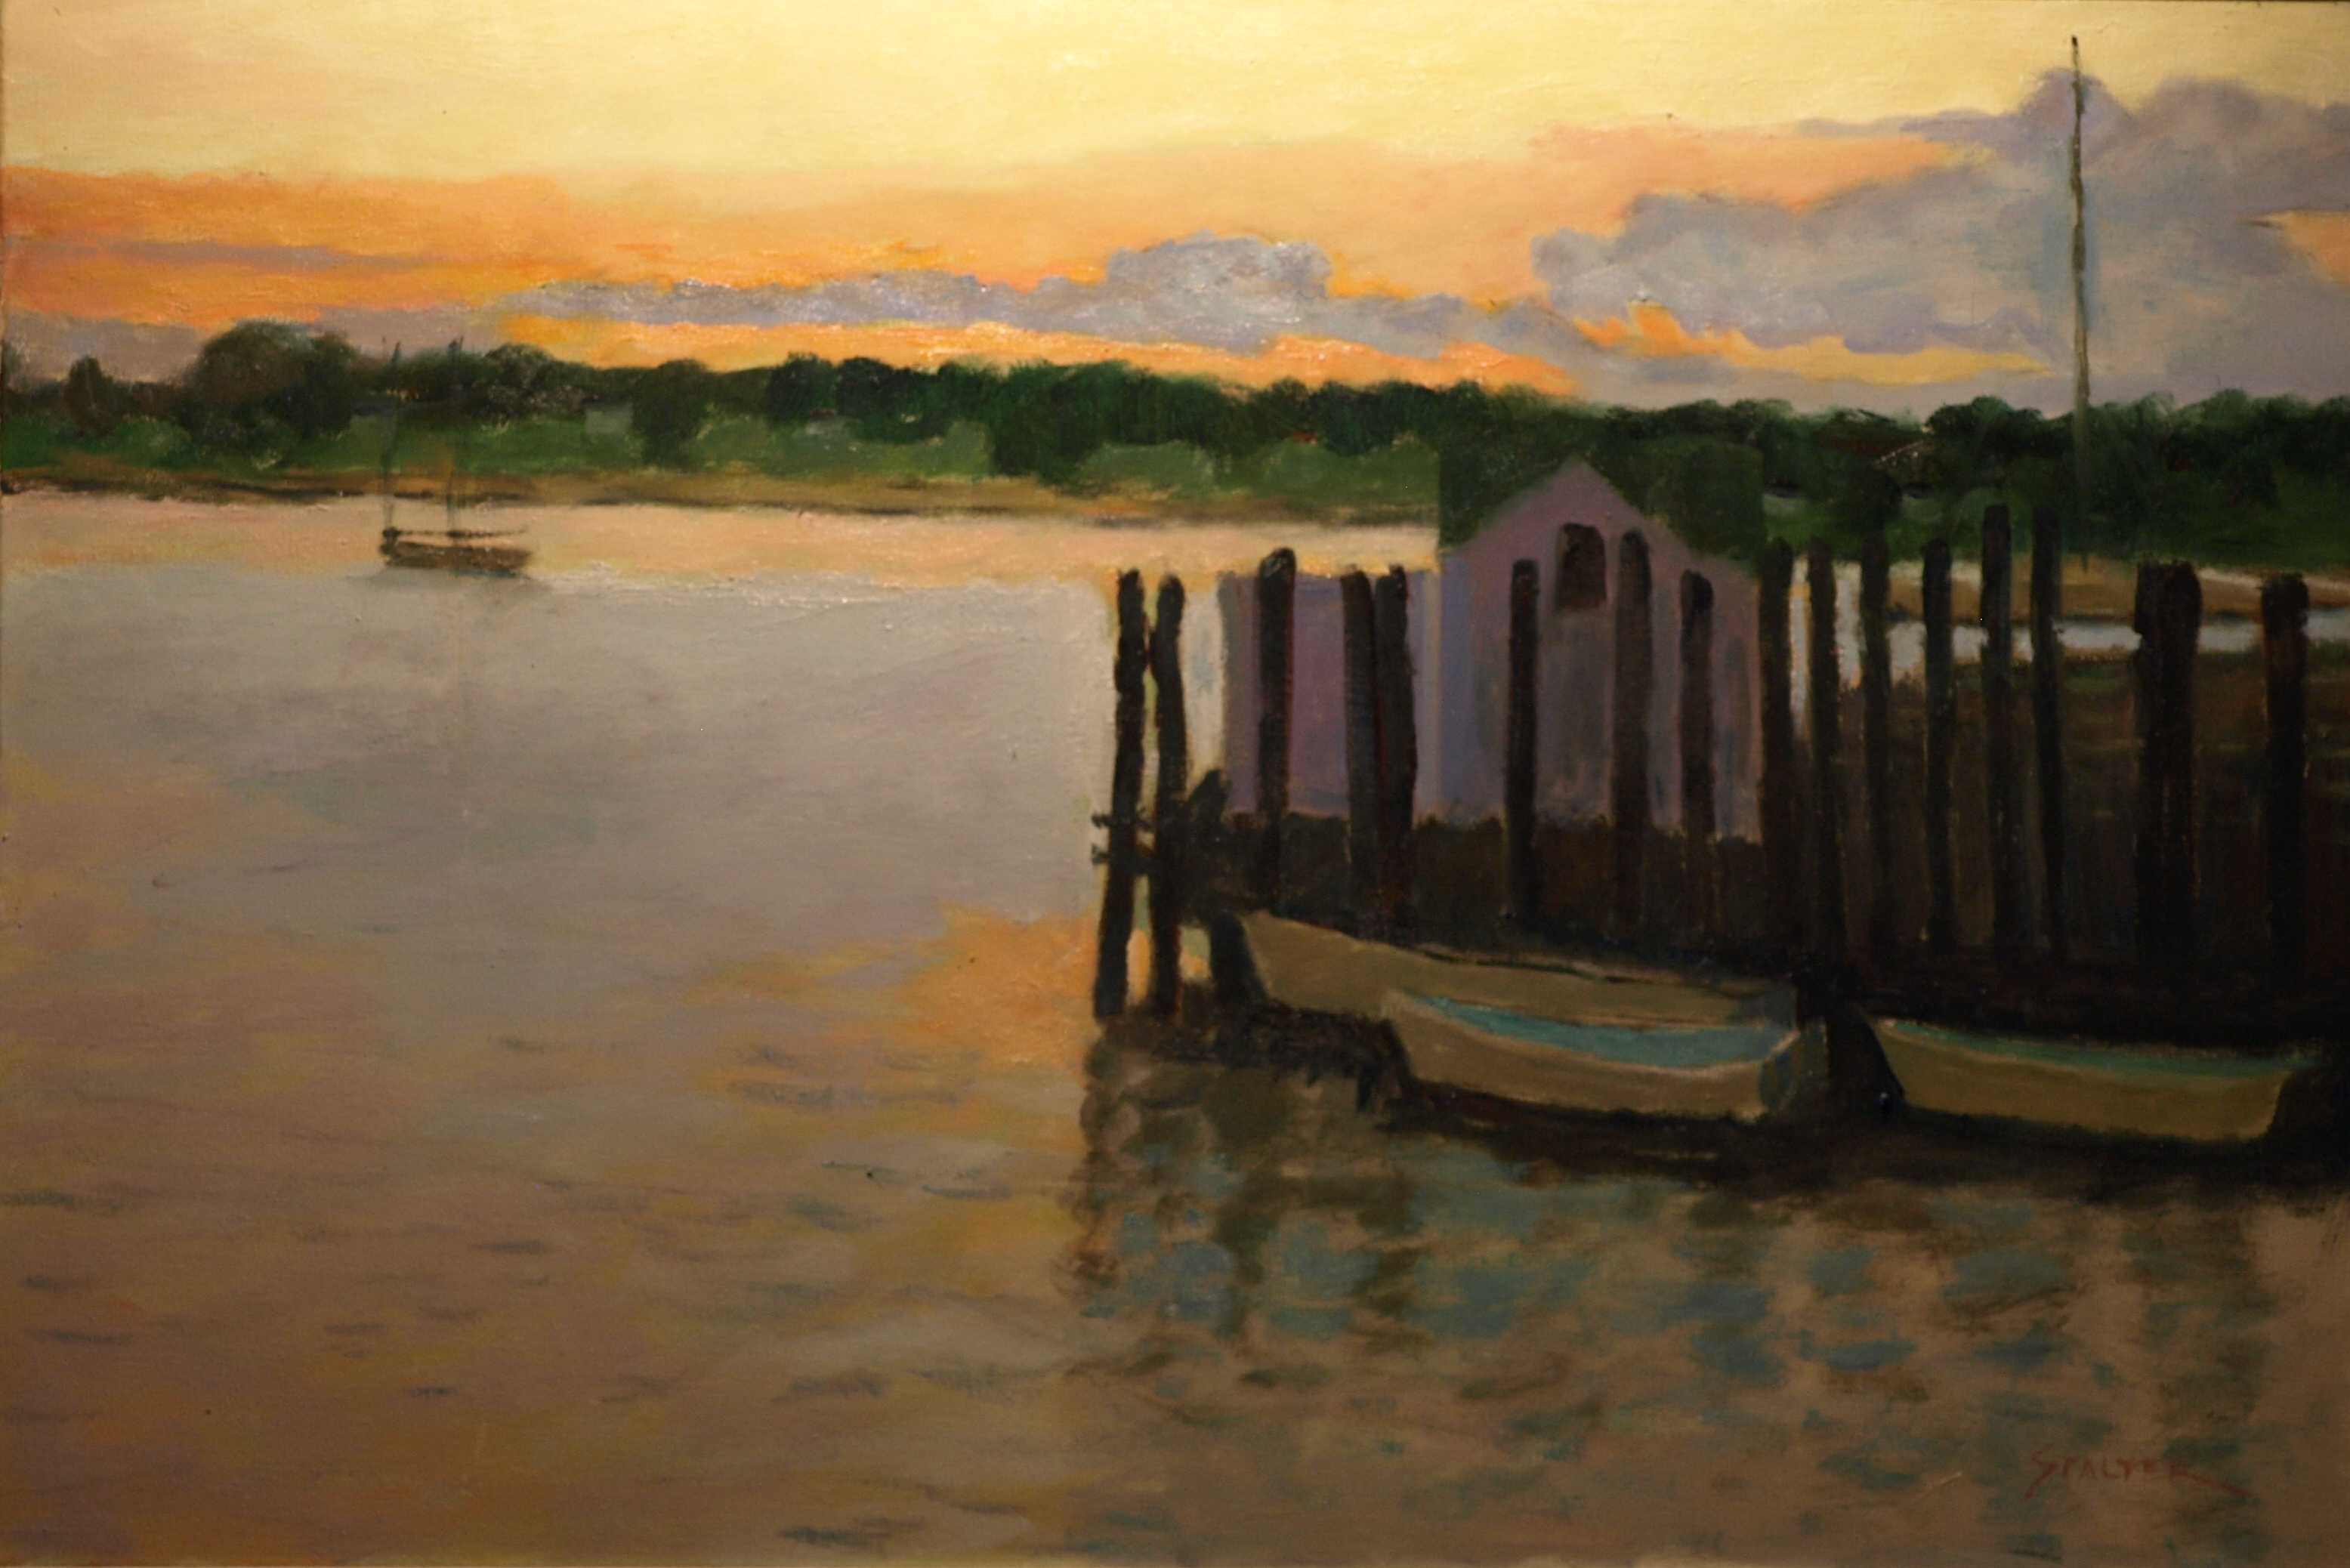 Dockside Sunset, Oil on Canvas, 24 x 36 Inches, by Richard Stalter, $1200q